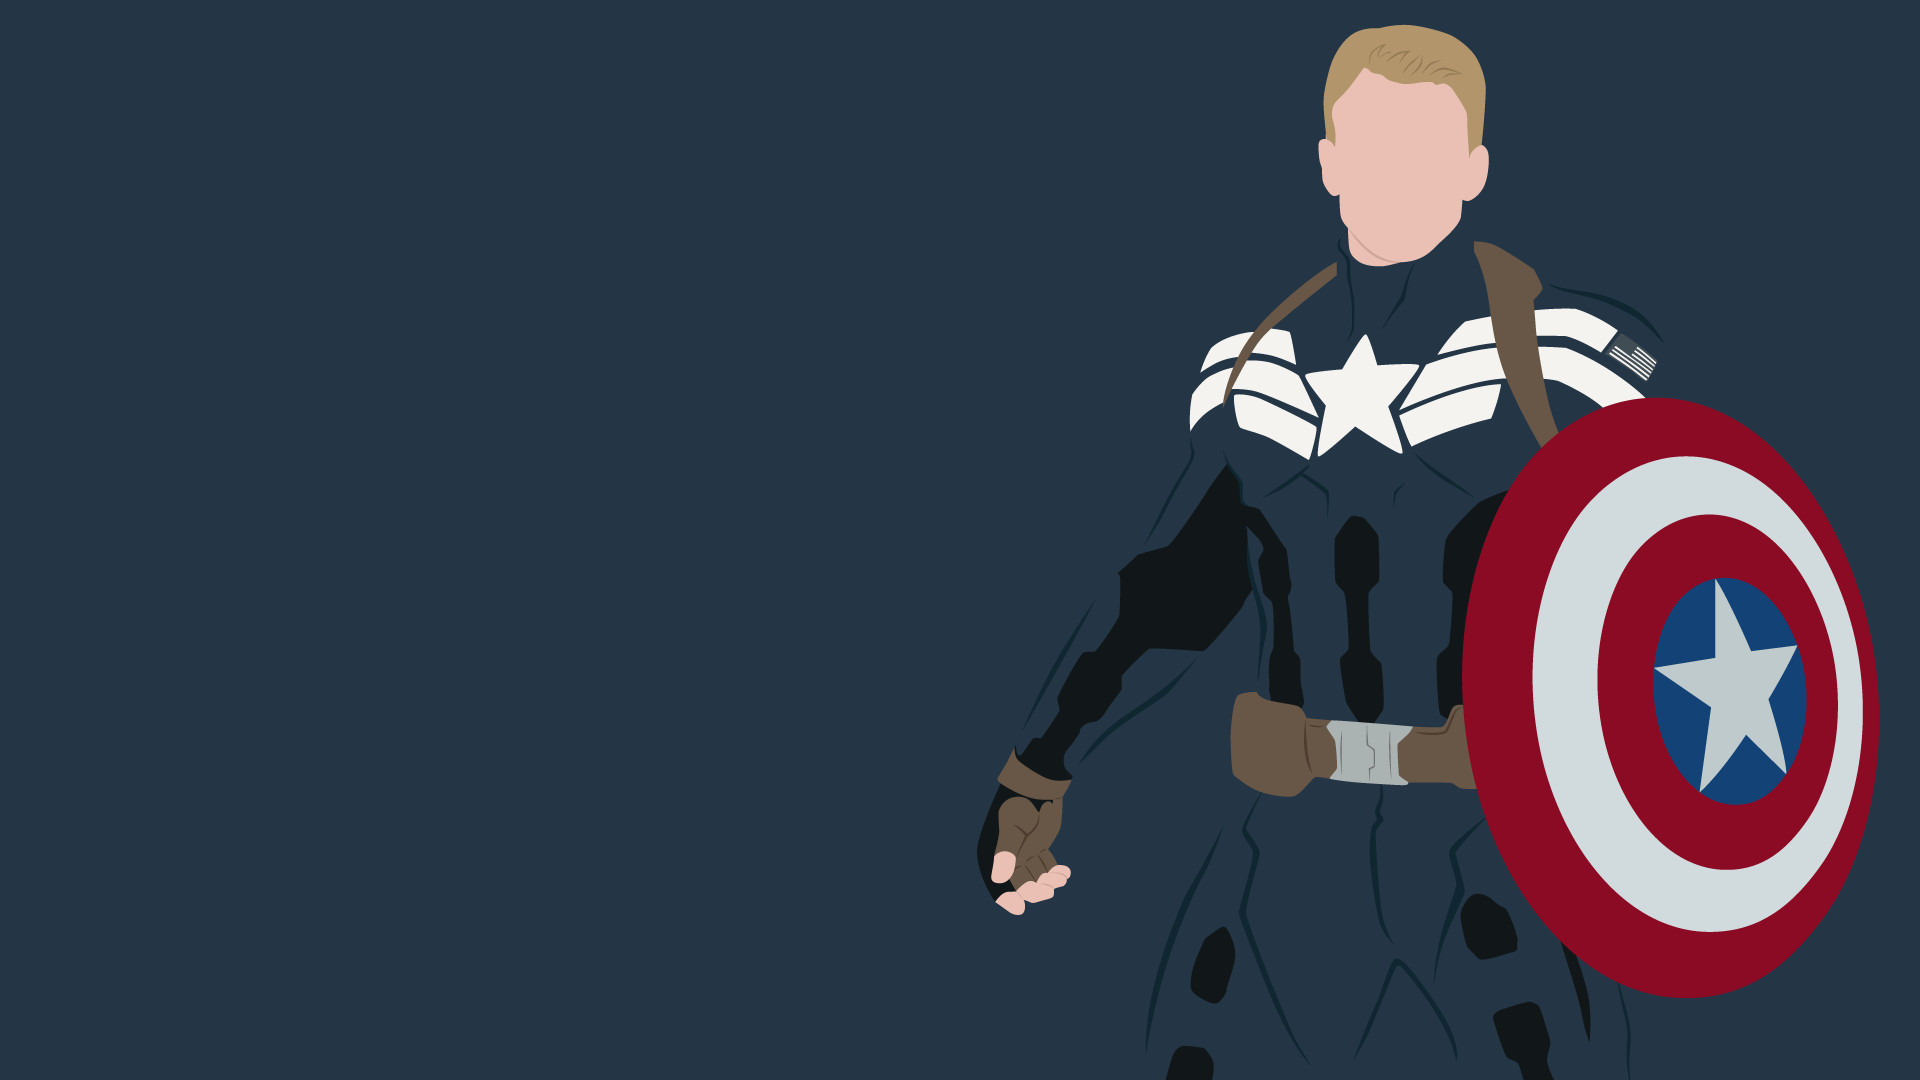 Res: 1920x1080, Captain Marvel Wallpapers 20 - 1920 X 1080